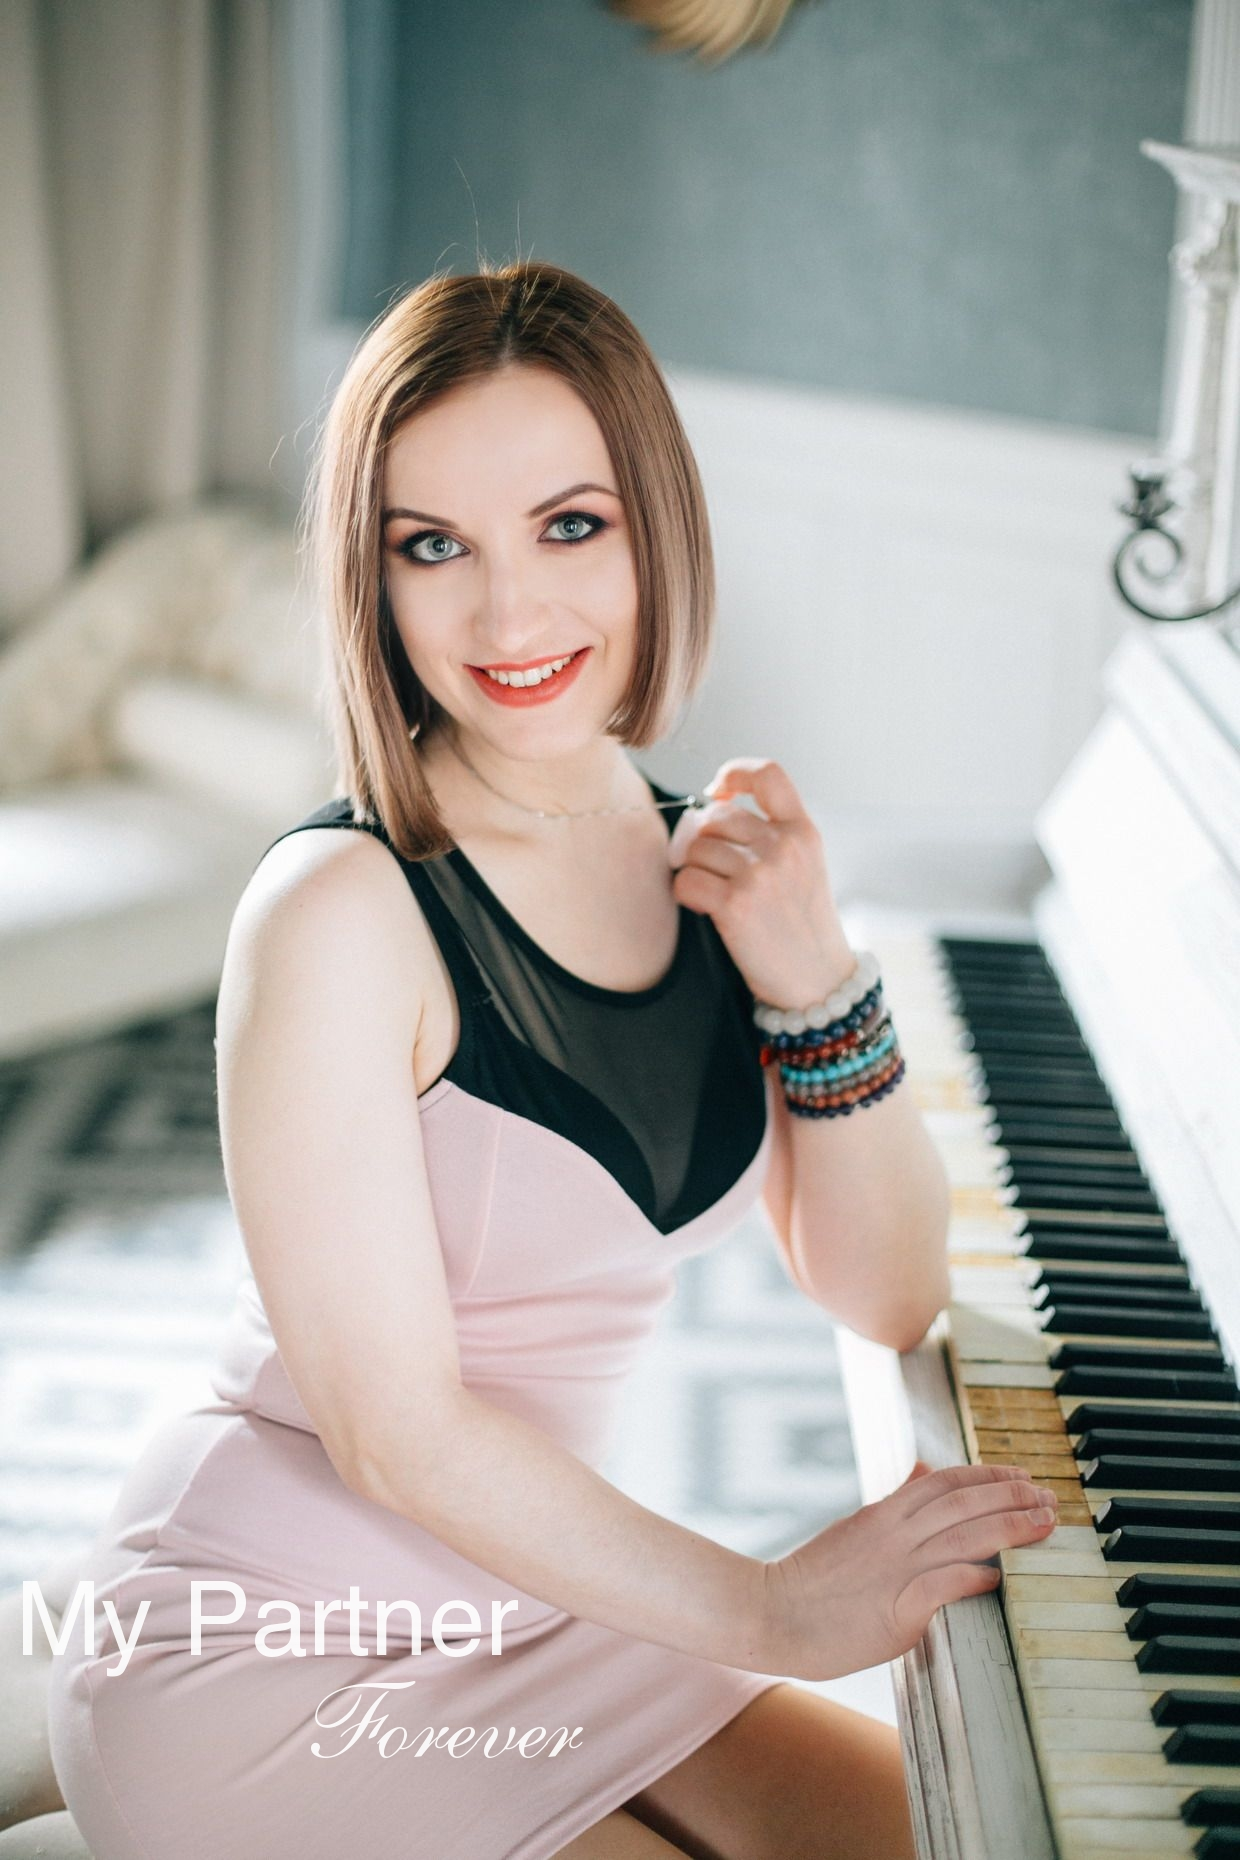 Datingsite to Meet Single Belarusian Girl Alina from Grodno, Belarus